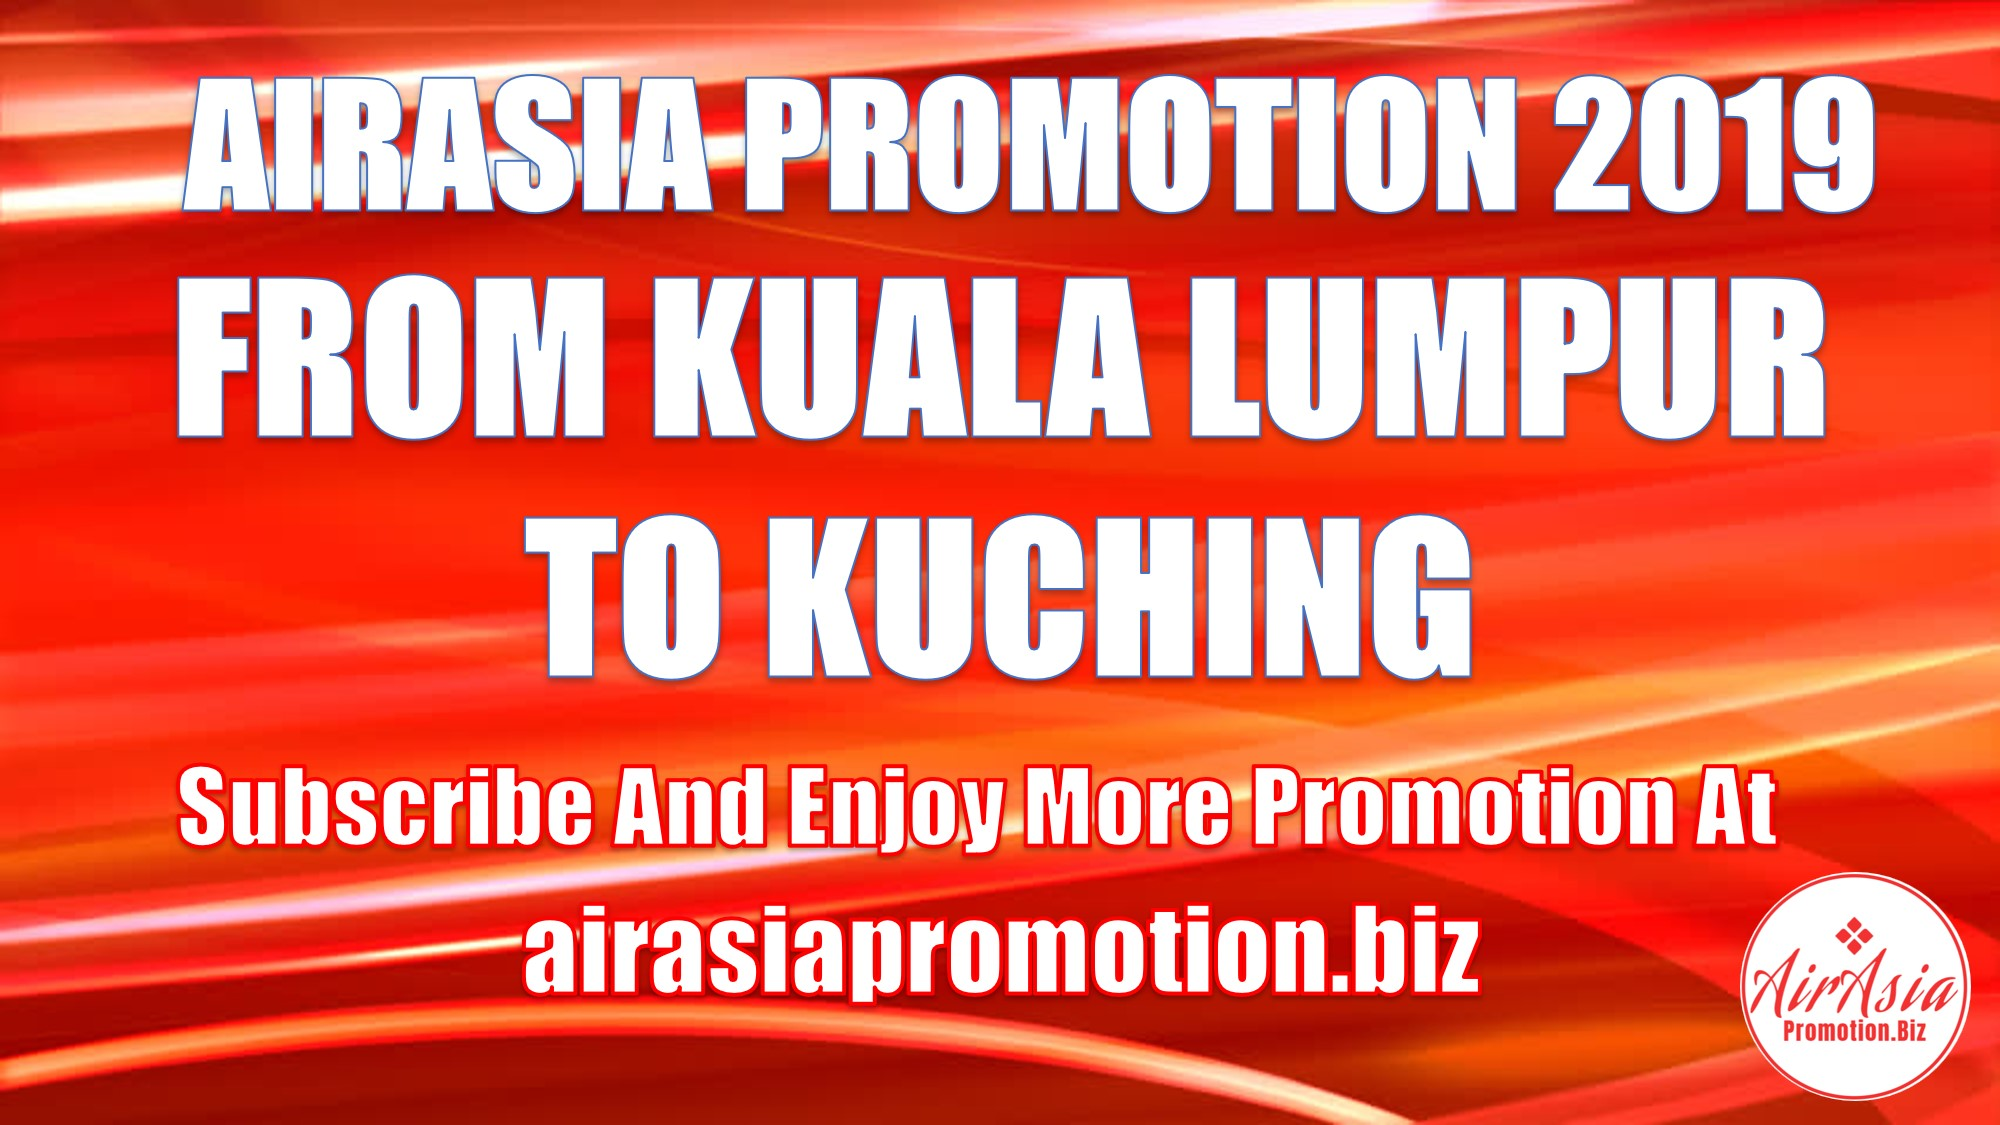 AirAsia Promotion From Kuala Lumpur To Kuching In March 2019